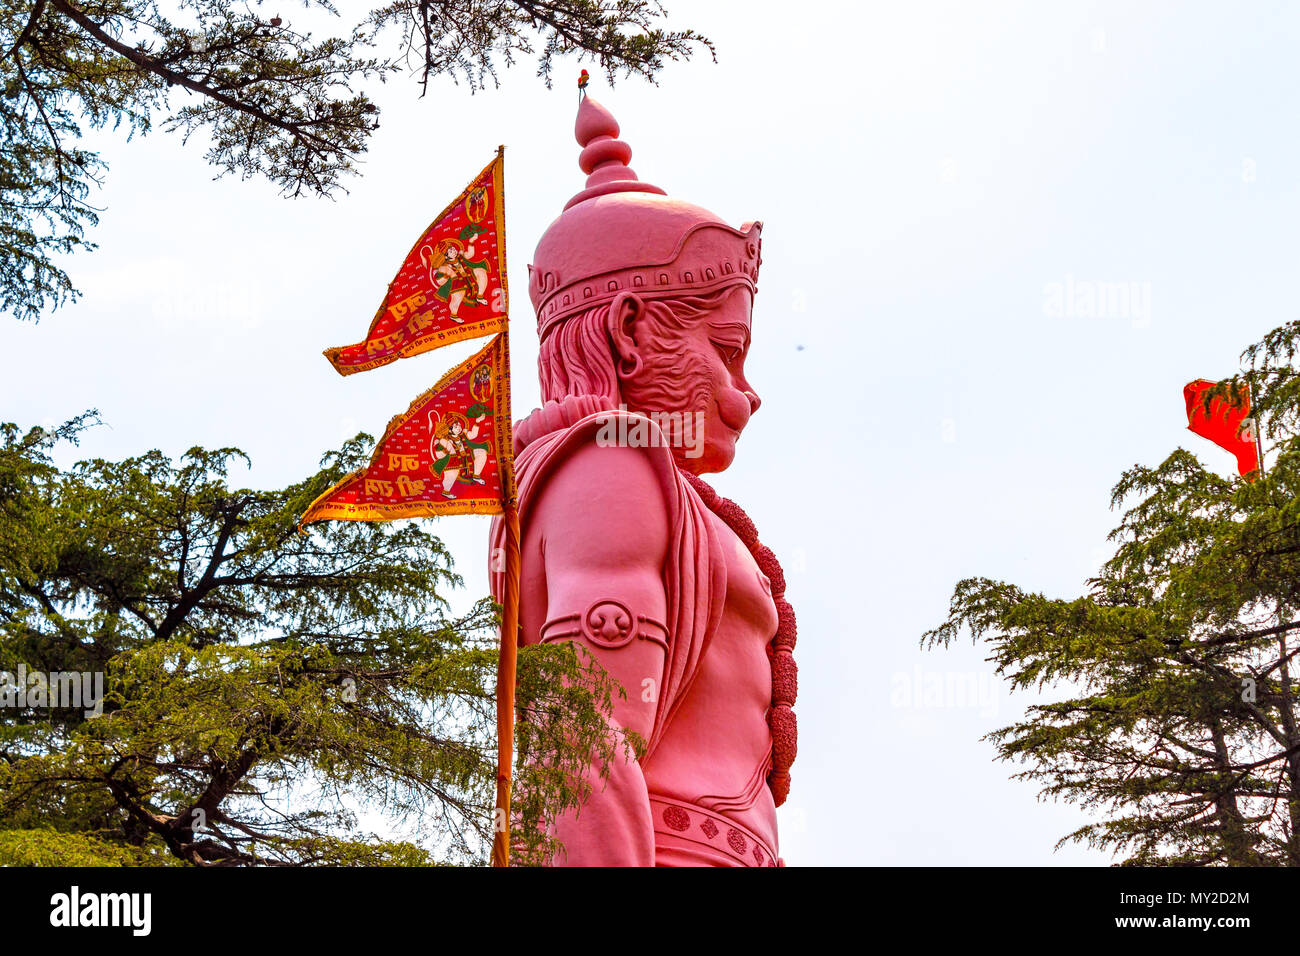 Lord Hanuman statue in Jakhu temple situated in the beautiful city of Shimla, Himachal Pradesh, India. Hindi text meaning ' Hail Lord Ram'. - Stock Image